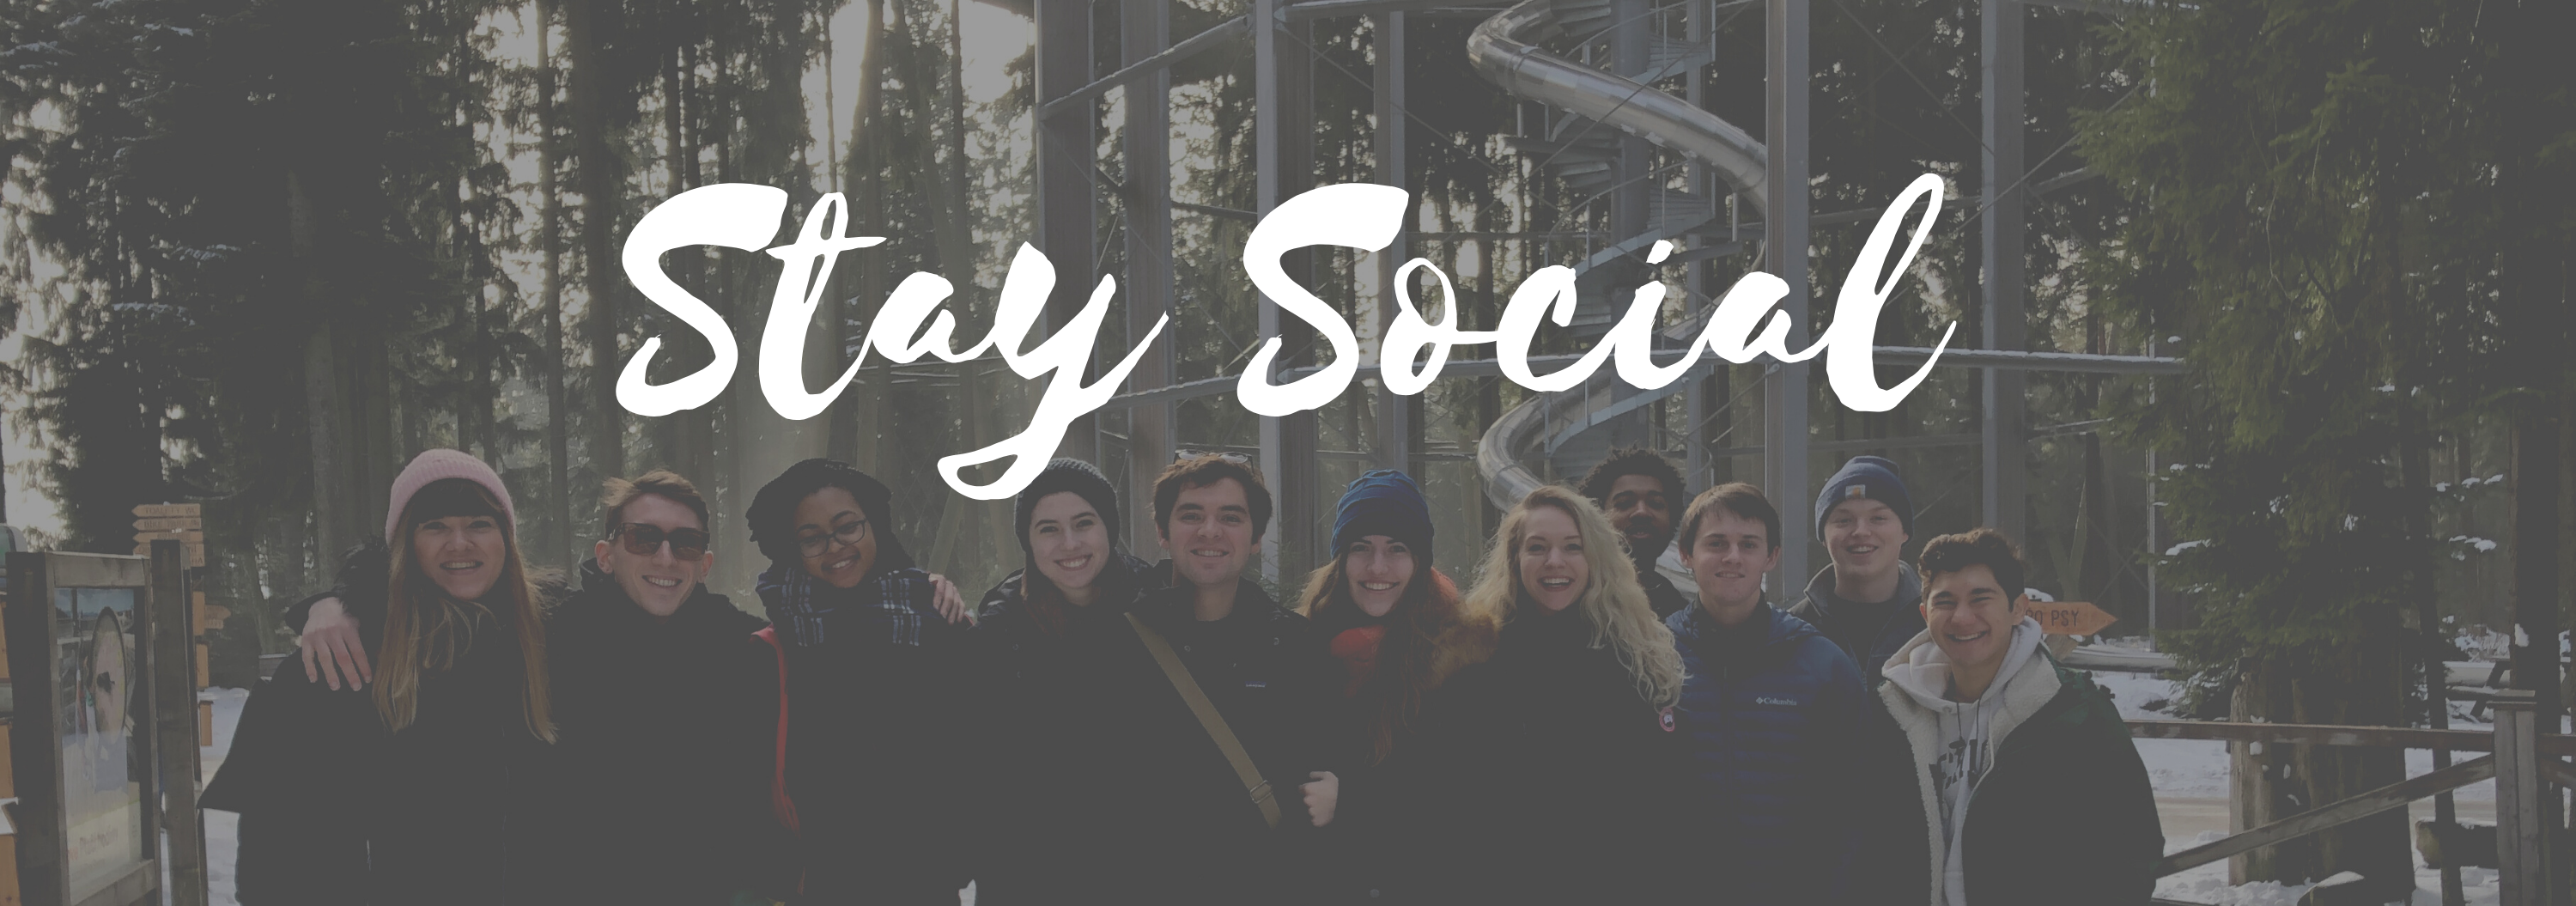 stay social-graphic-group of students holding by the arms happily